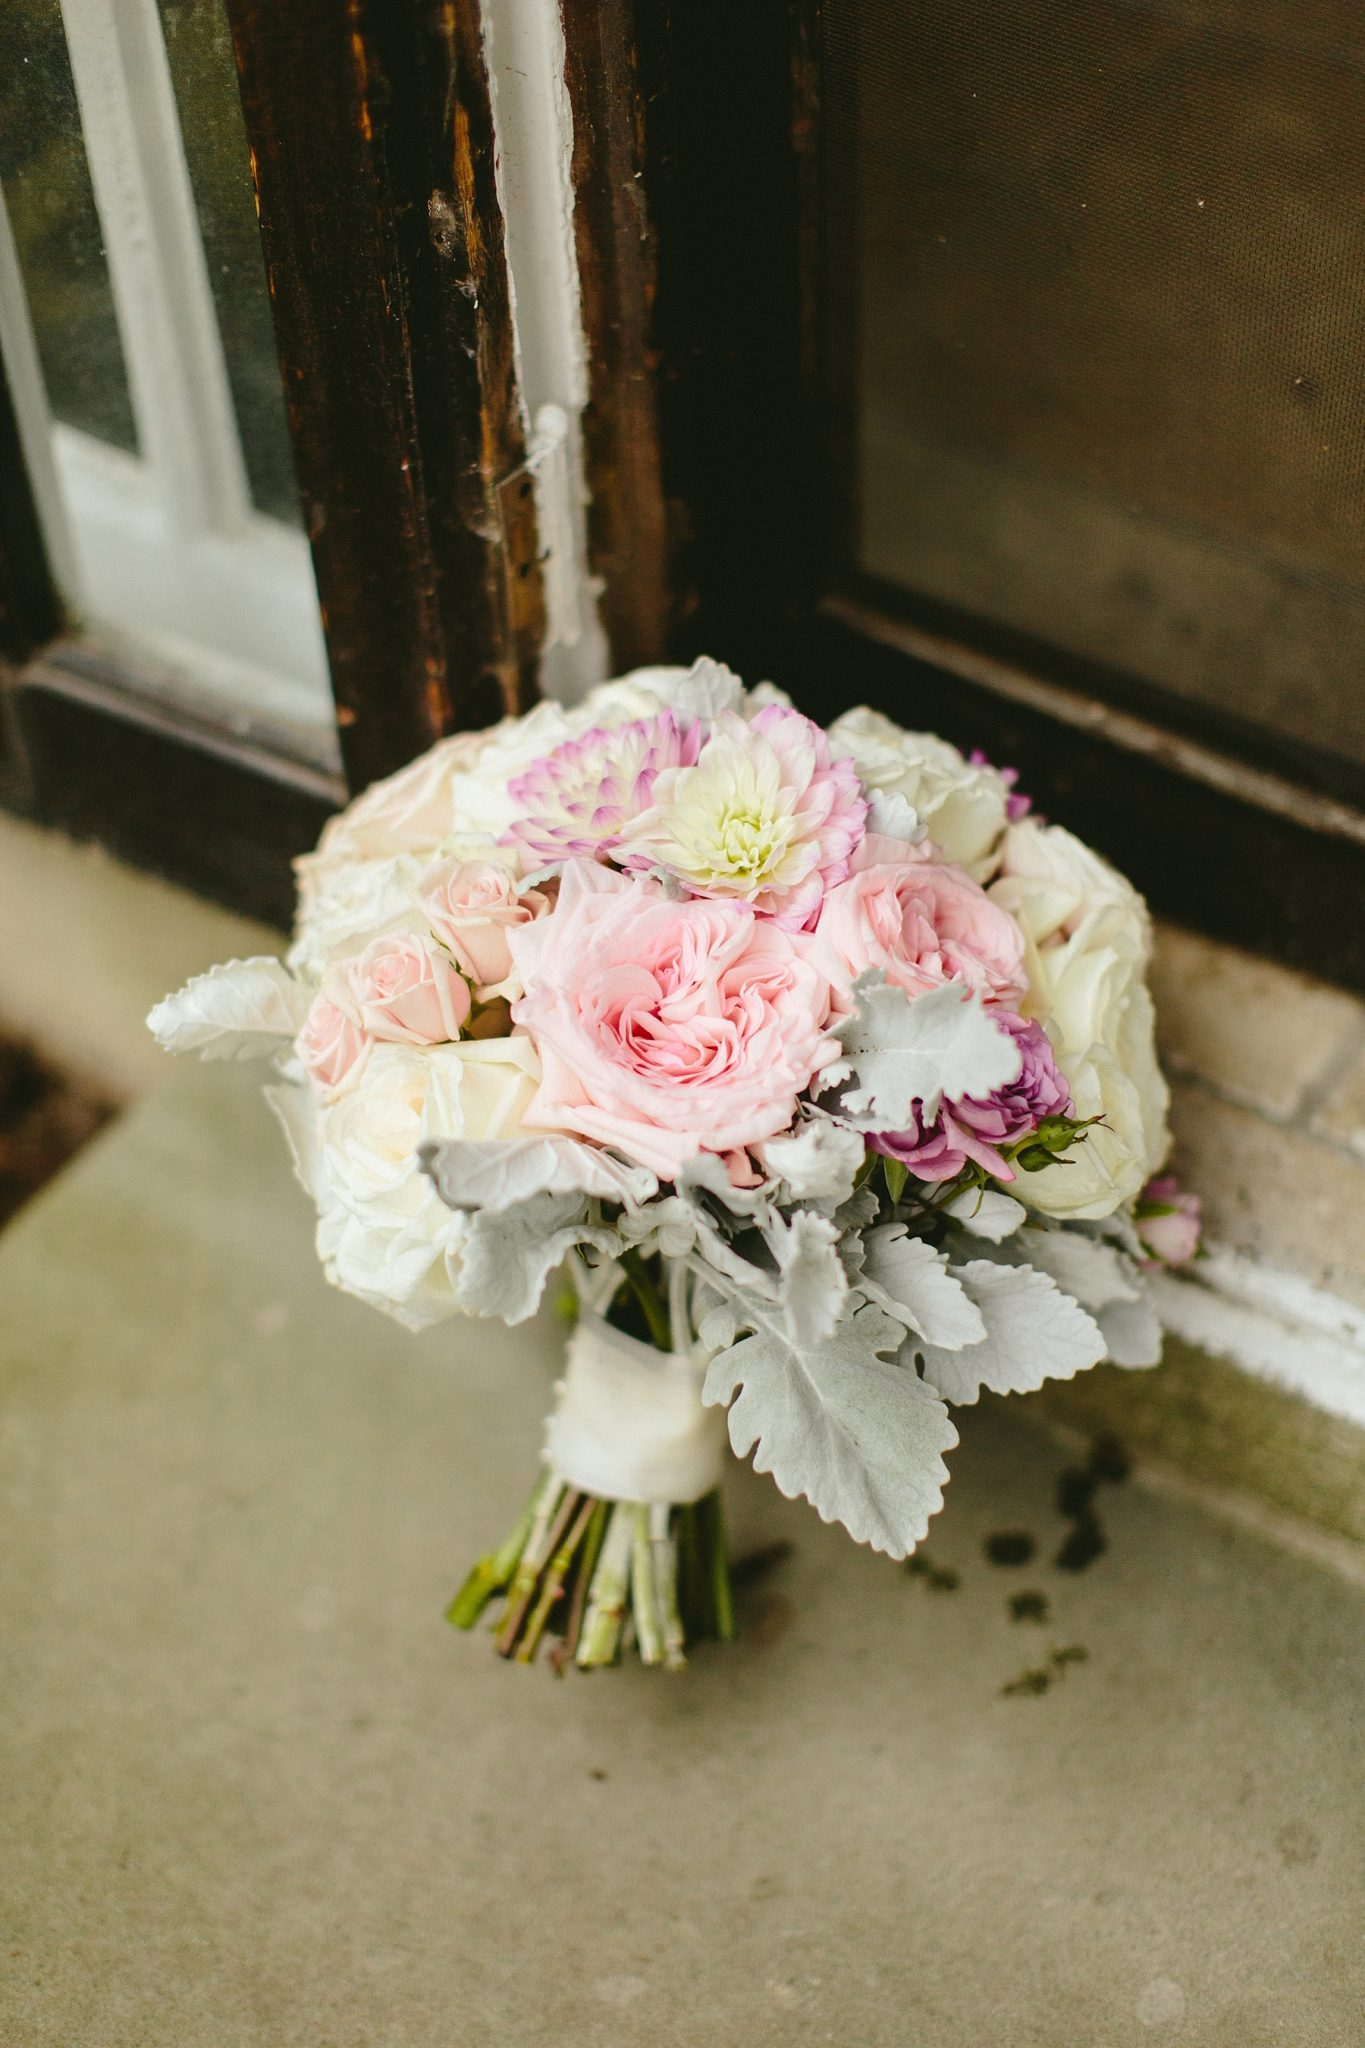 pastel bouquet, pastel wedding colors, pastel wedding theme, blush bouquet, romantic wedding flowers, soft wedding bouquet, pastel wedding flowers, Brooklyn wedding photography, Brooklyn wedding, Philadelphia wedding photographer, Philadelphia wedding, Brooklyn new york photographer, unique wedding inspiration, fun wedding photos, romantic wedding, destination wedding photographer